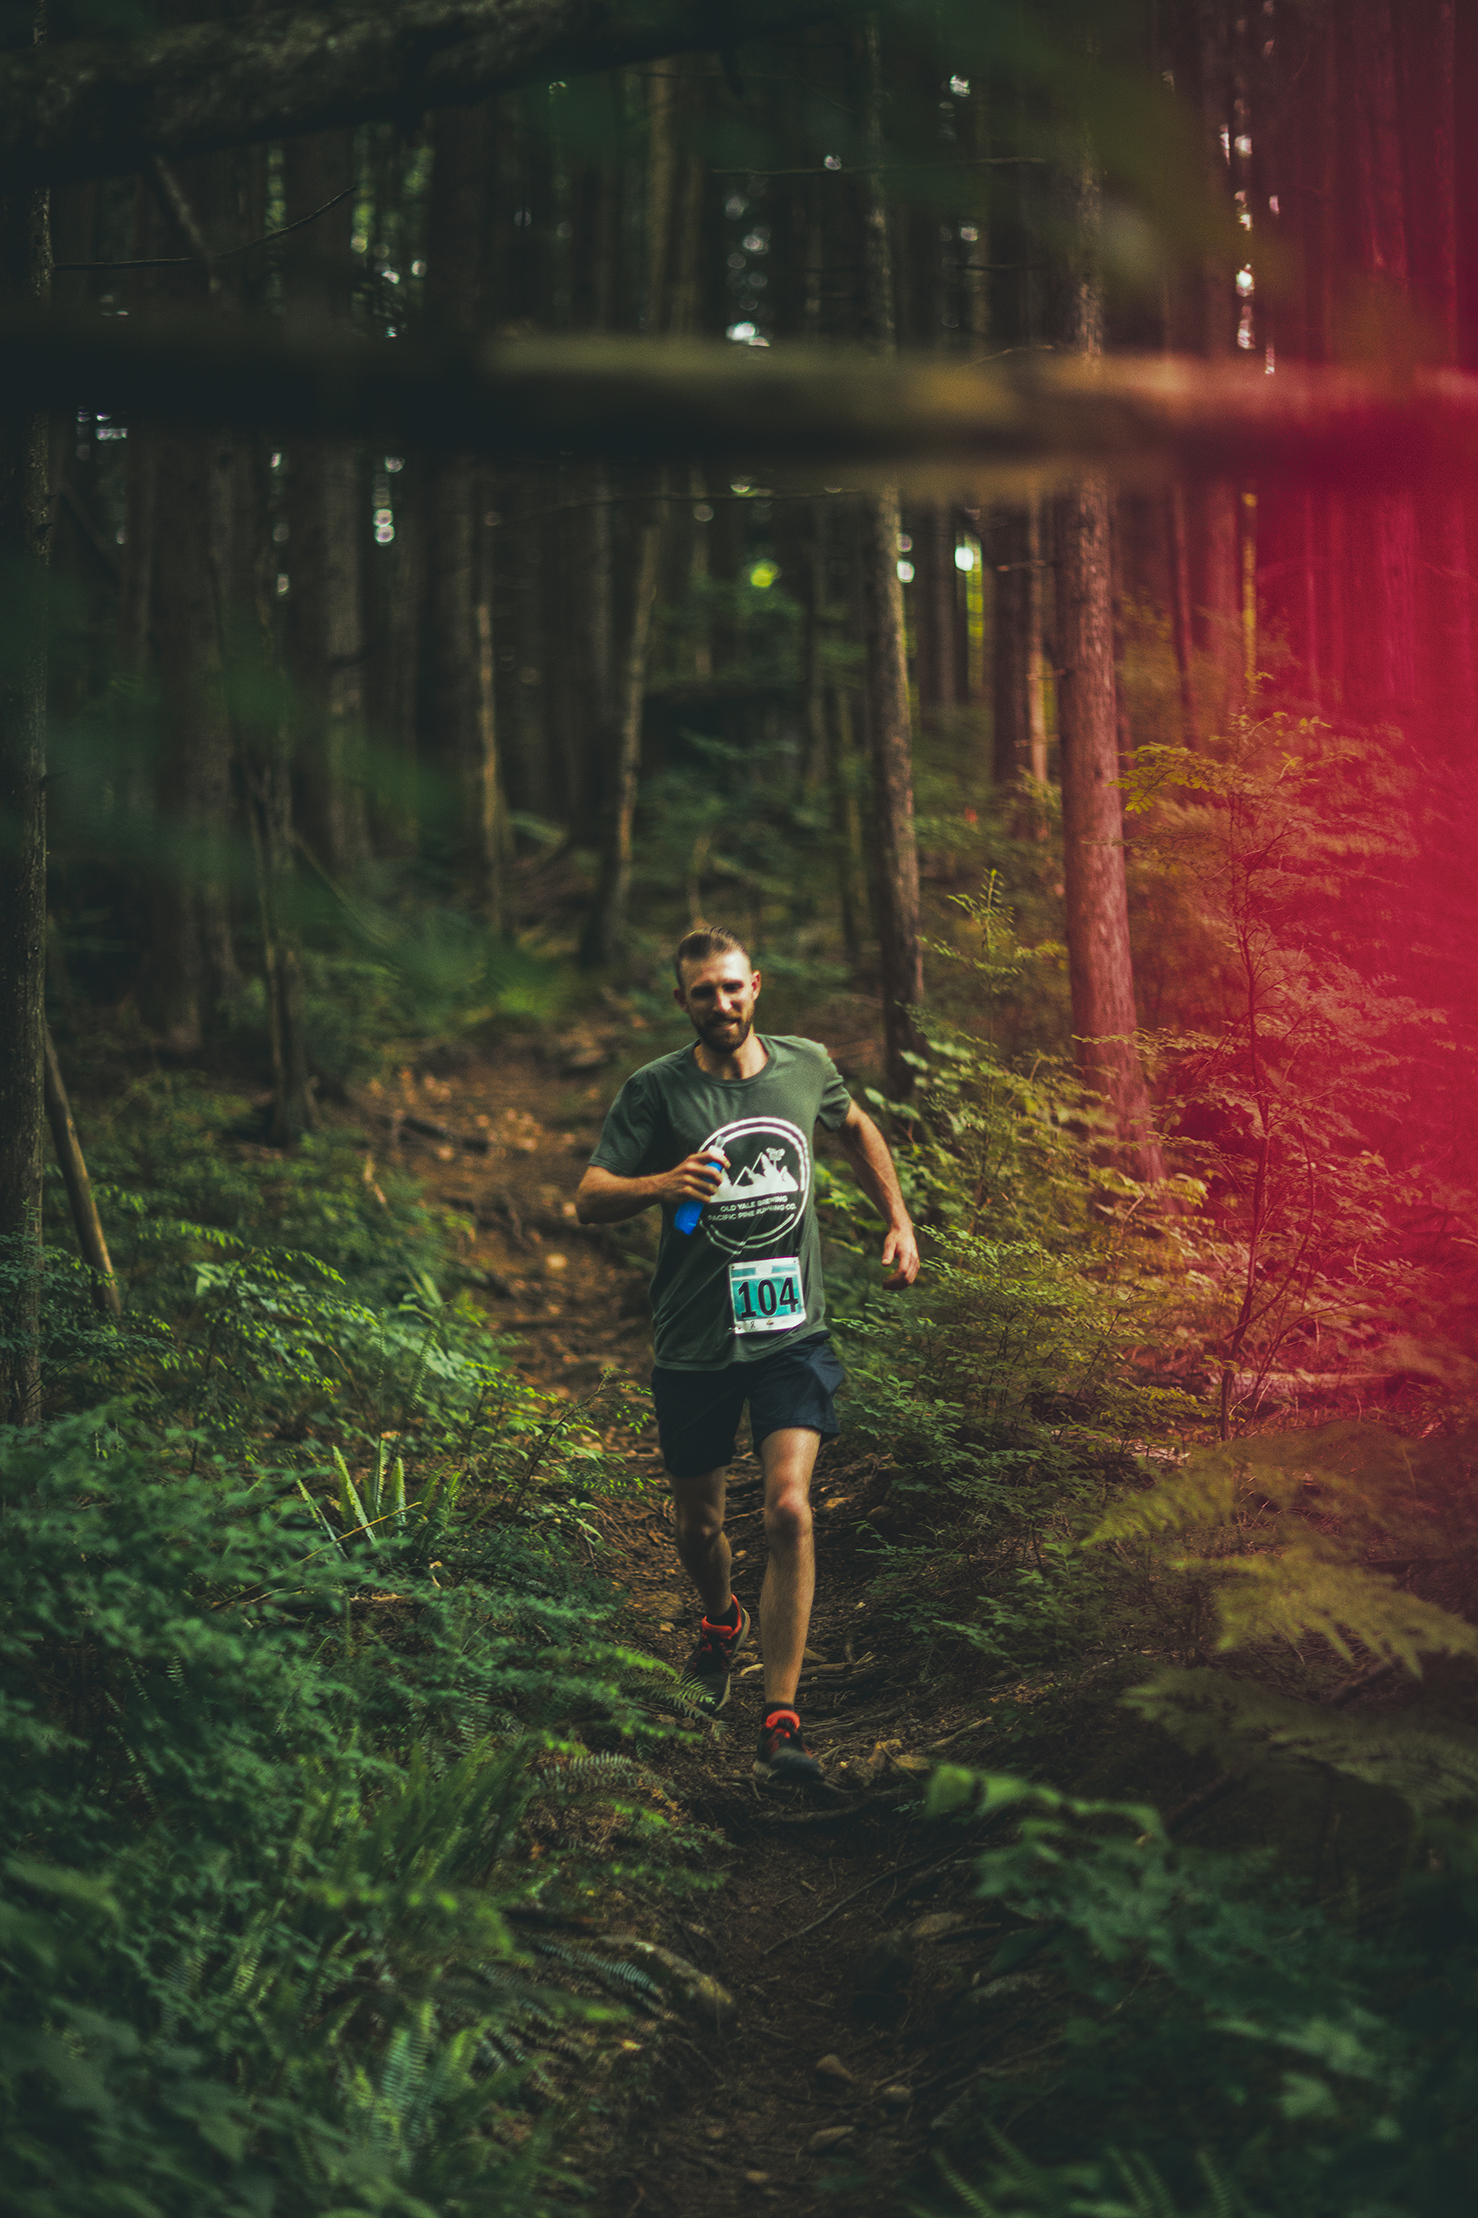 Fraser Valley Trail Races - Bear Mountain - IMG_1825 by Brice Ferre Studio - Vancouver Portrait Adventure and Athlete Photographer.jpg